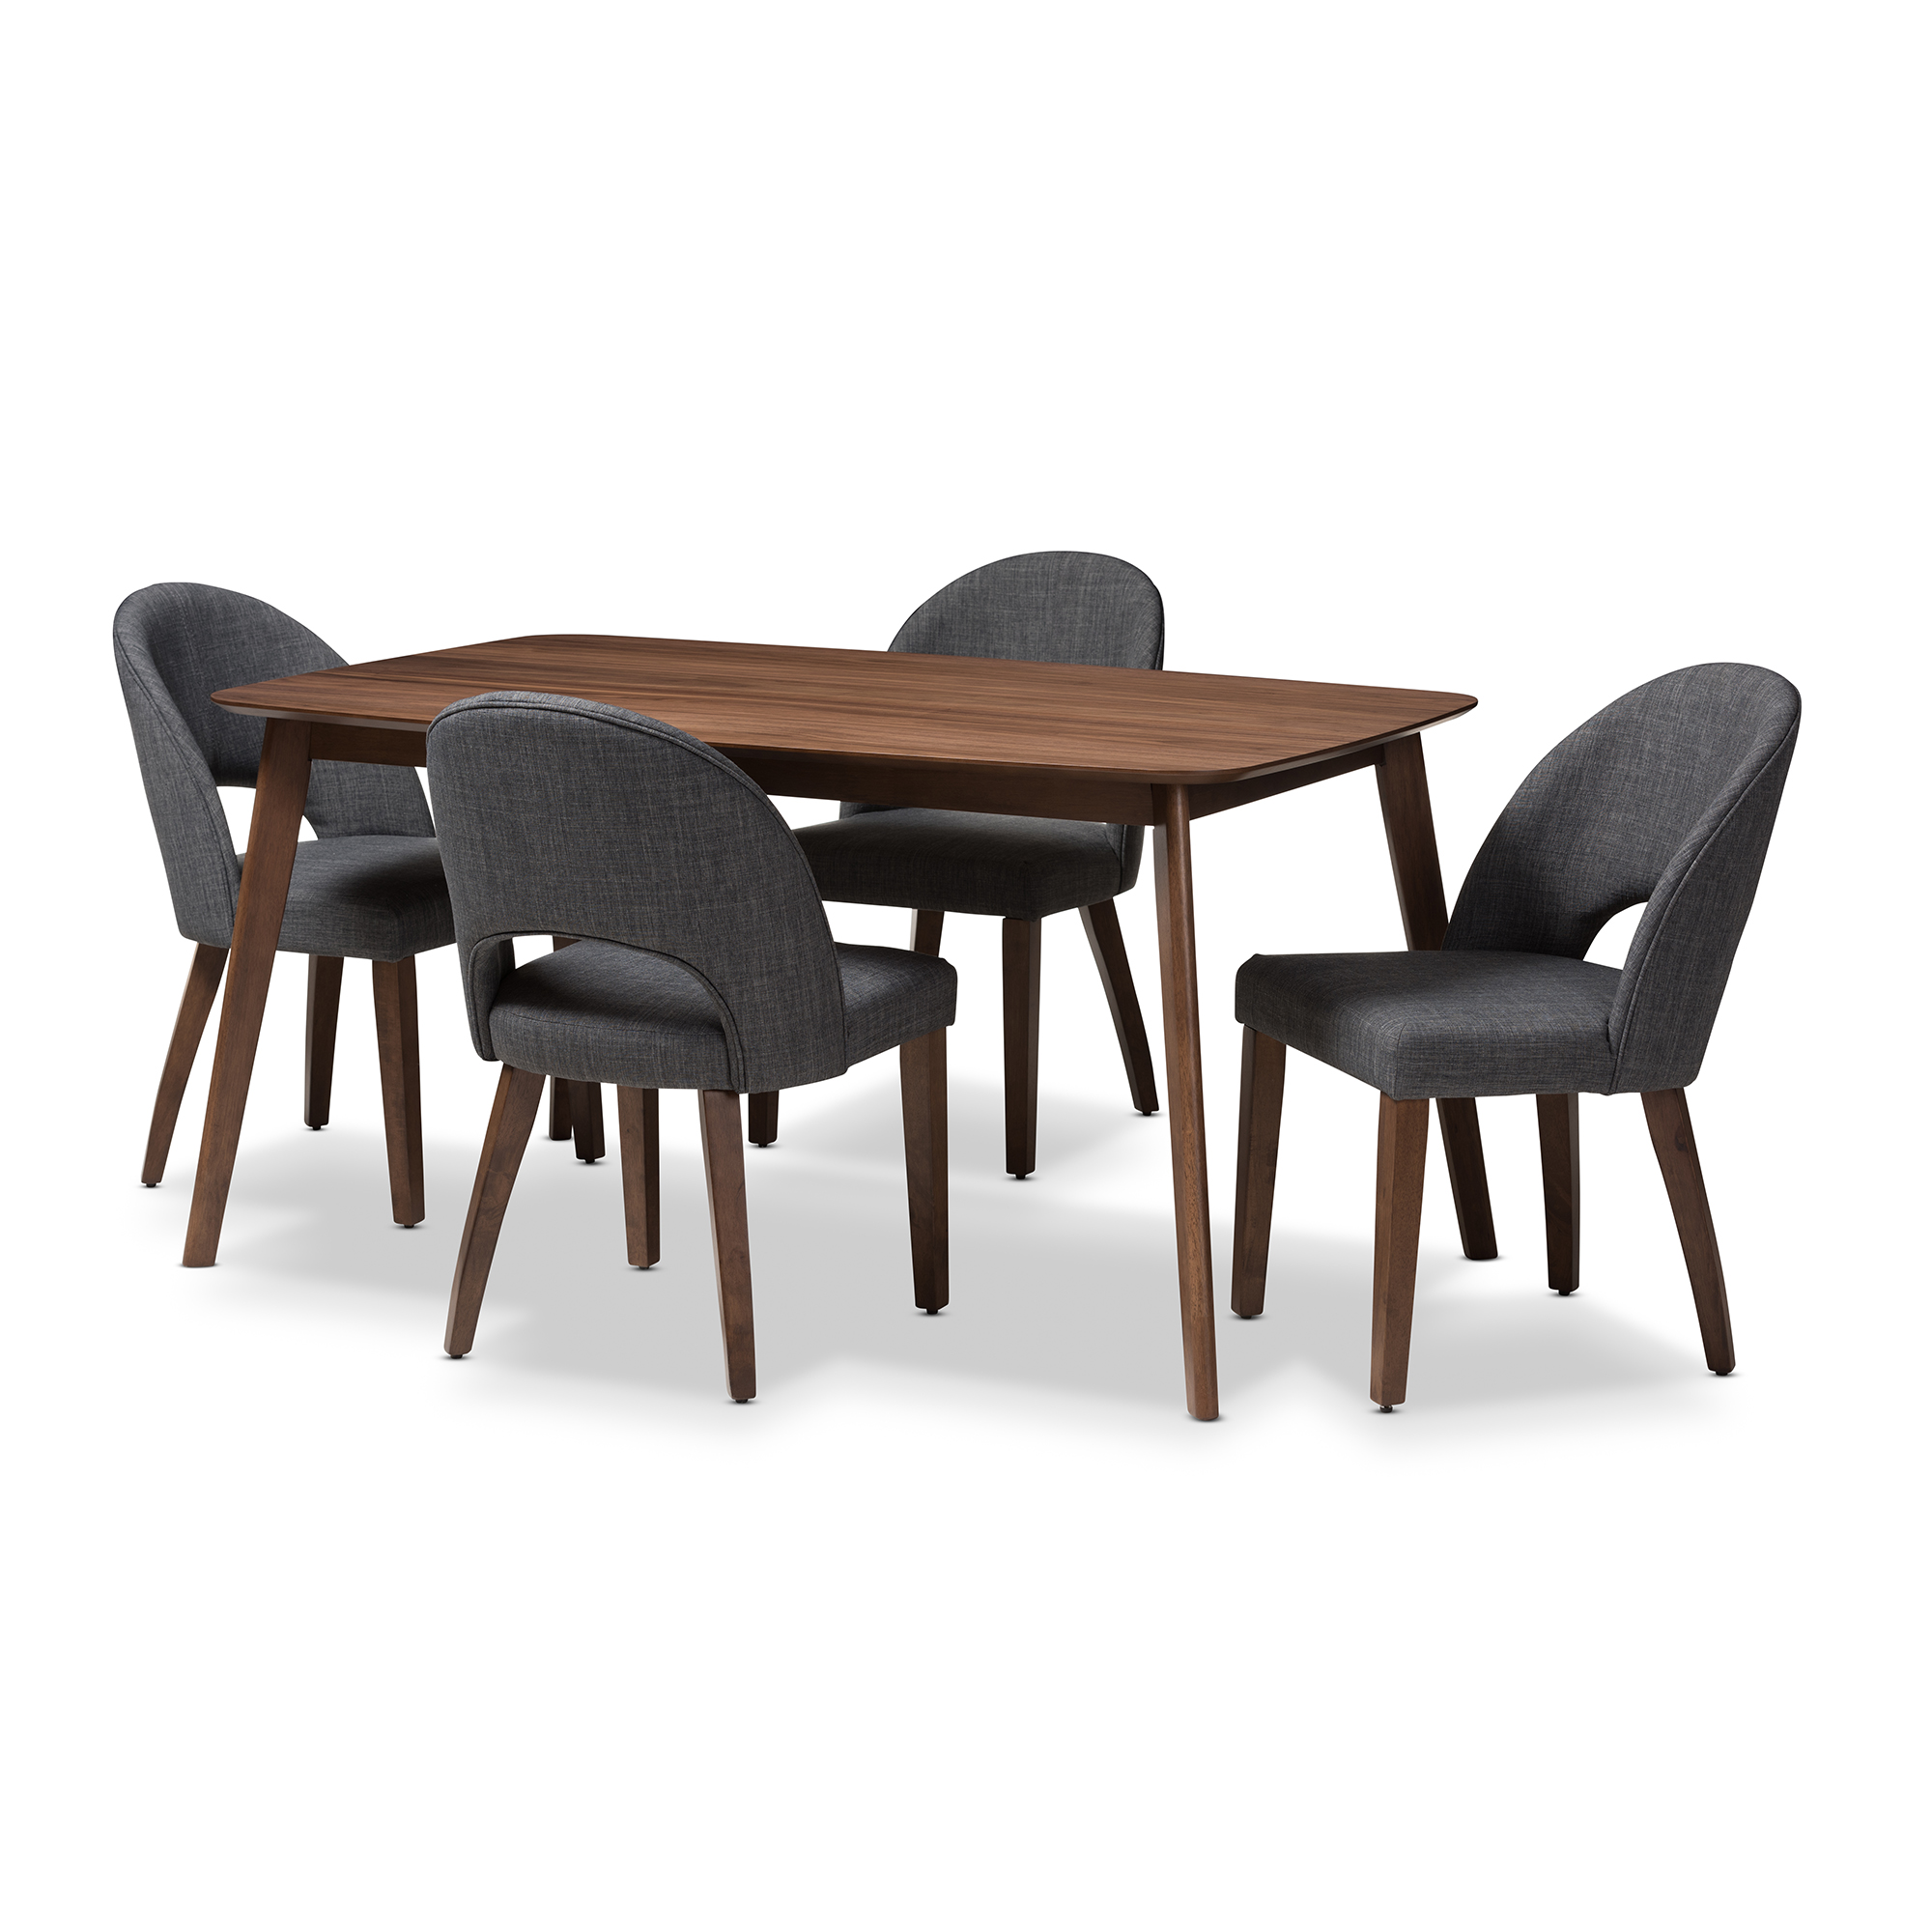 Baxton Studio Wesley Mid-Century Modern Fabric Upholstered Walnut Finished Wood 5-Piece Dining Set, Multiple Colors